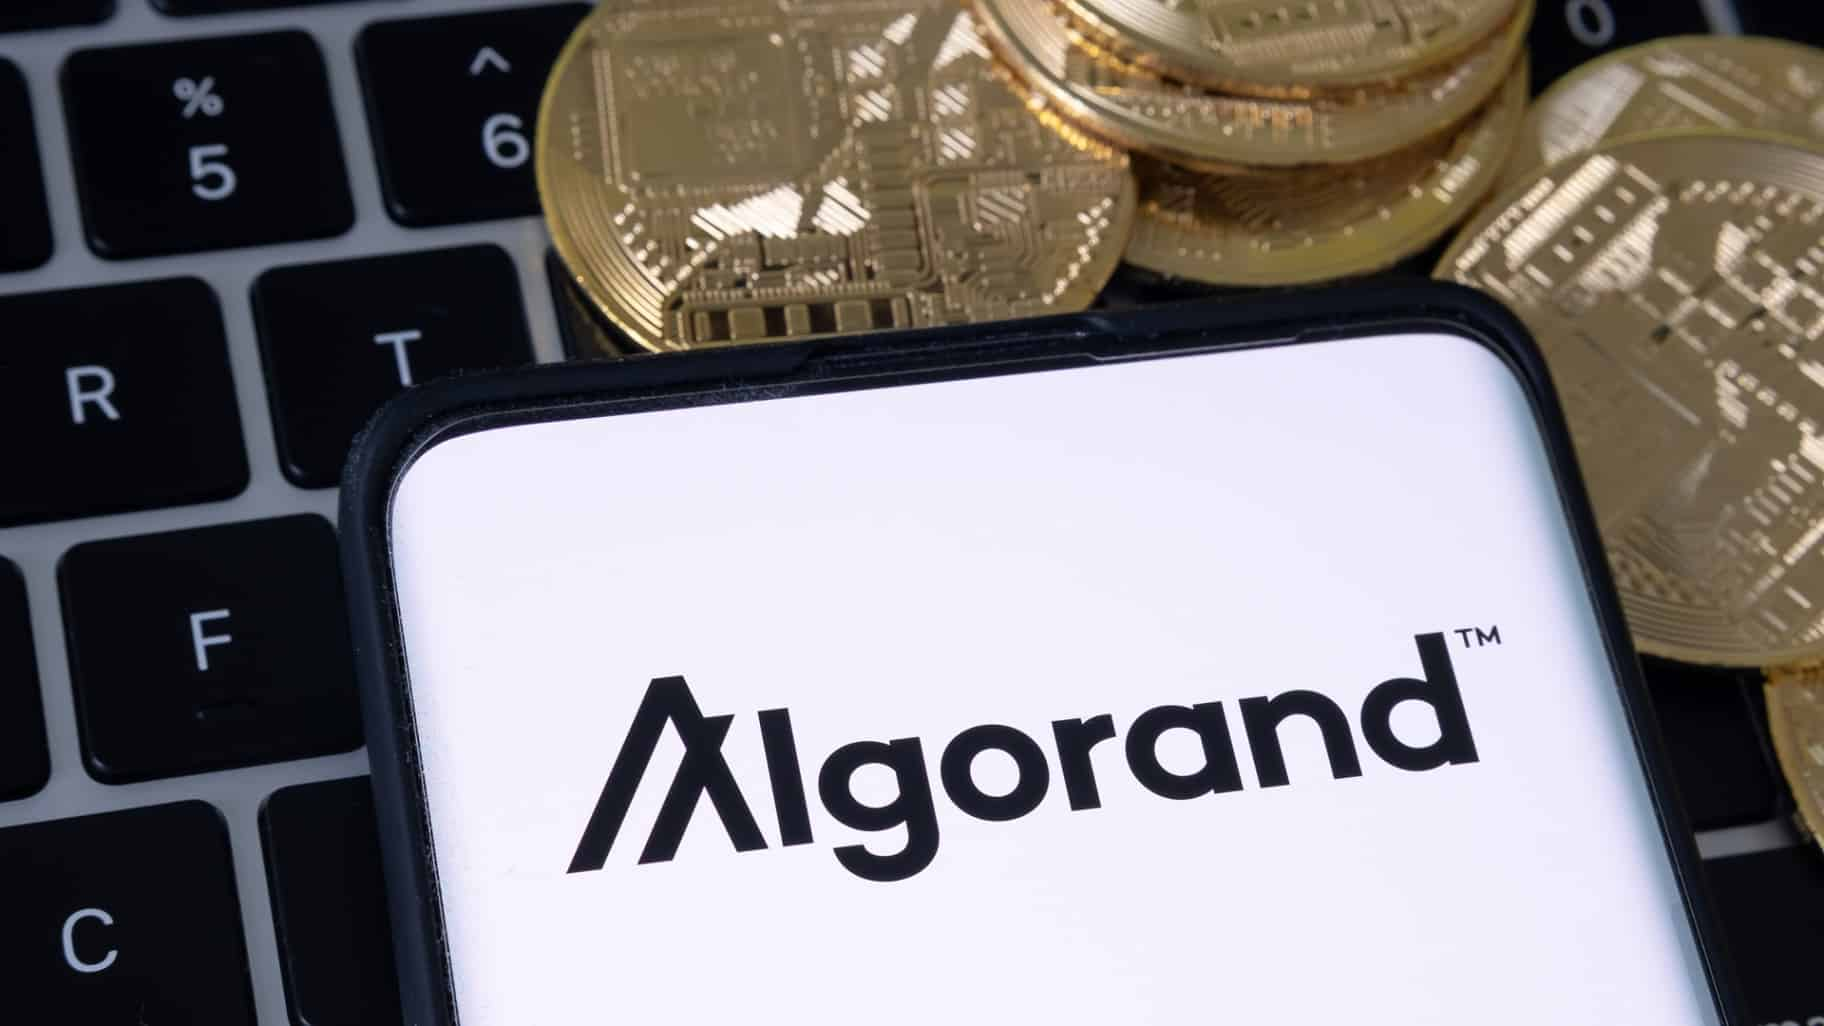 Algorand network receives another 100 million into its fund